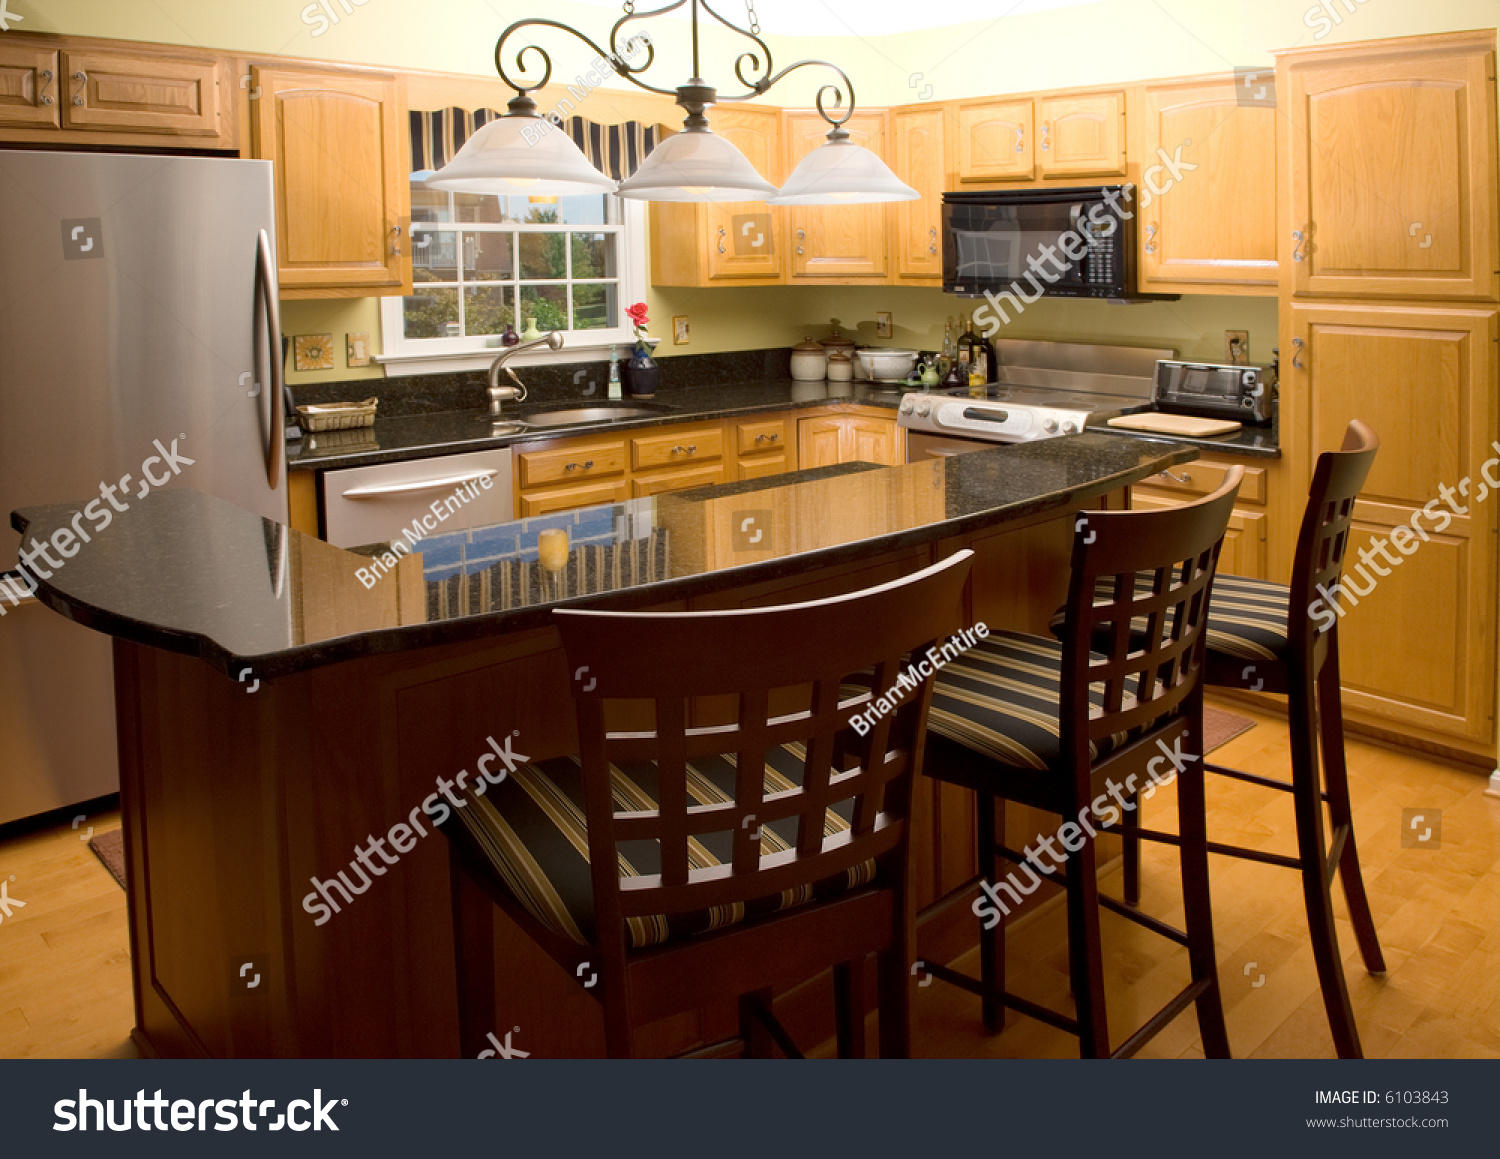 High-End Luxury Modern Kitchen With Granite Counter Tops